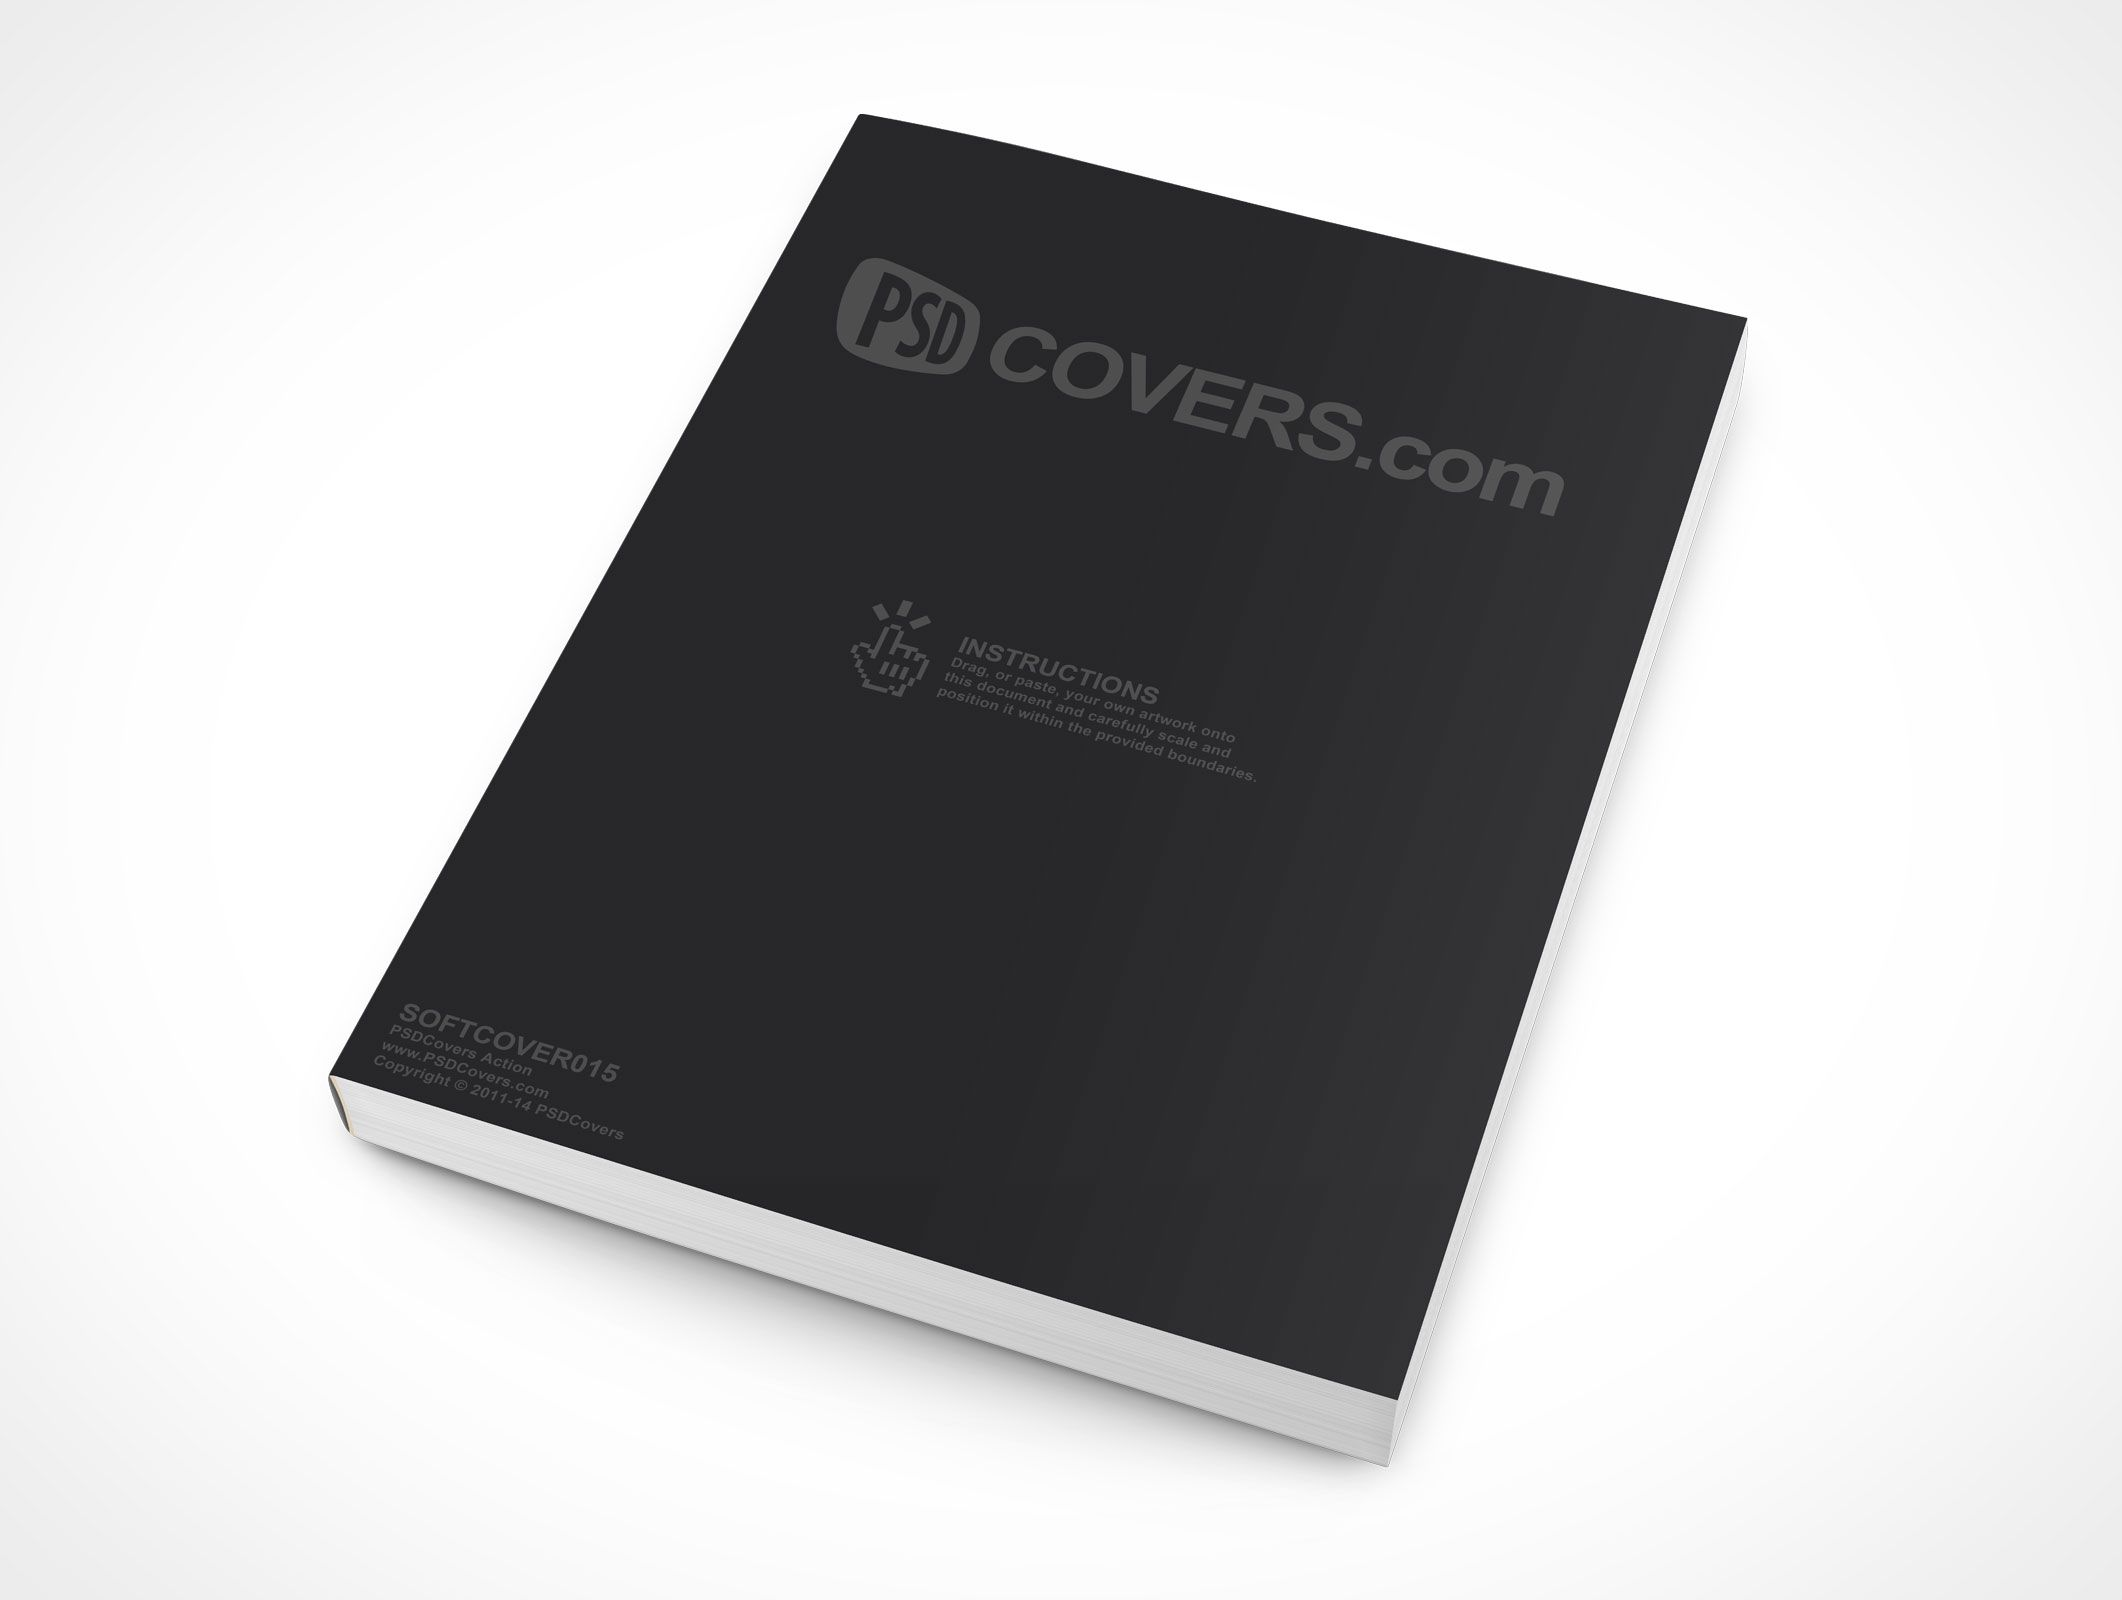 Softcover015 is a generic softcover paperback manual product softcover015 is a generic softcover paperback manual product mockup this psd mockup renders a softcover pronofoot35fo Choice Image